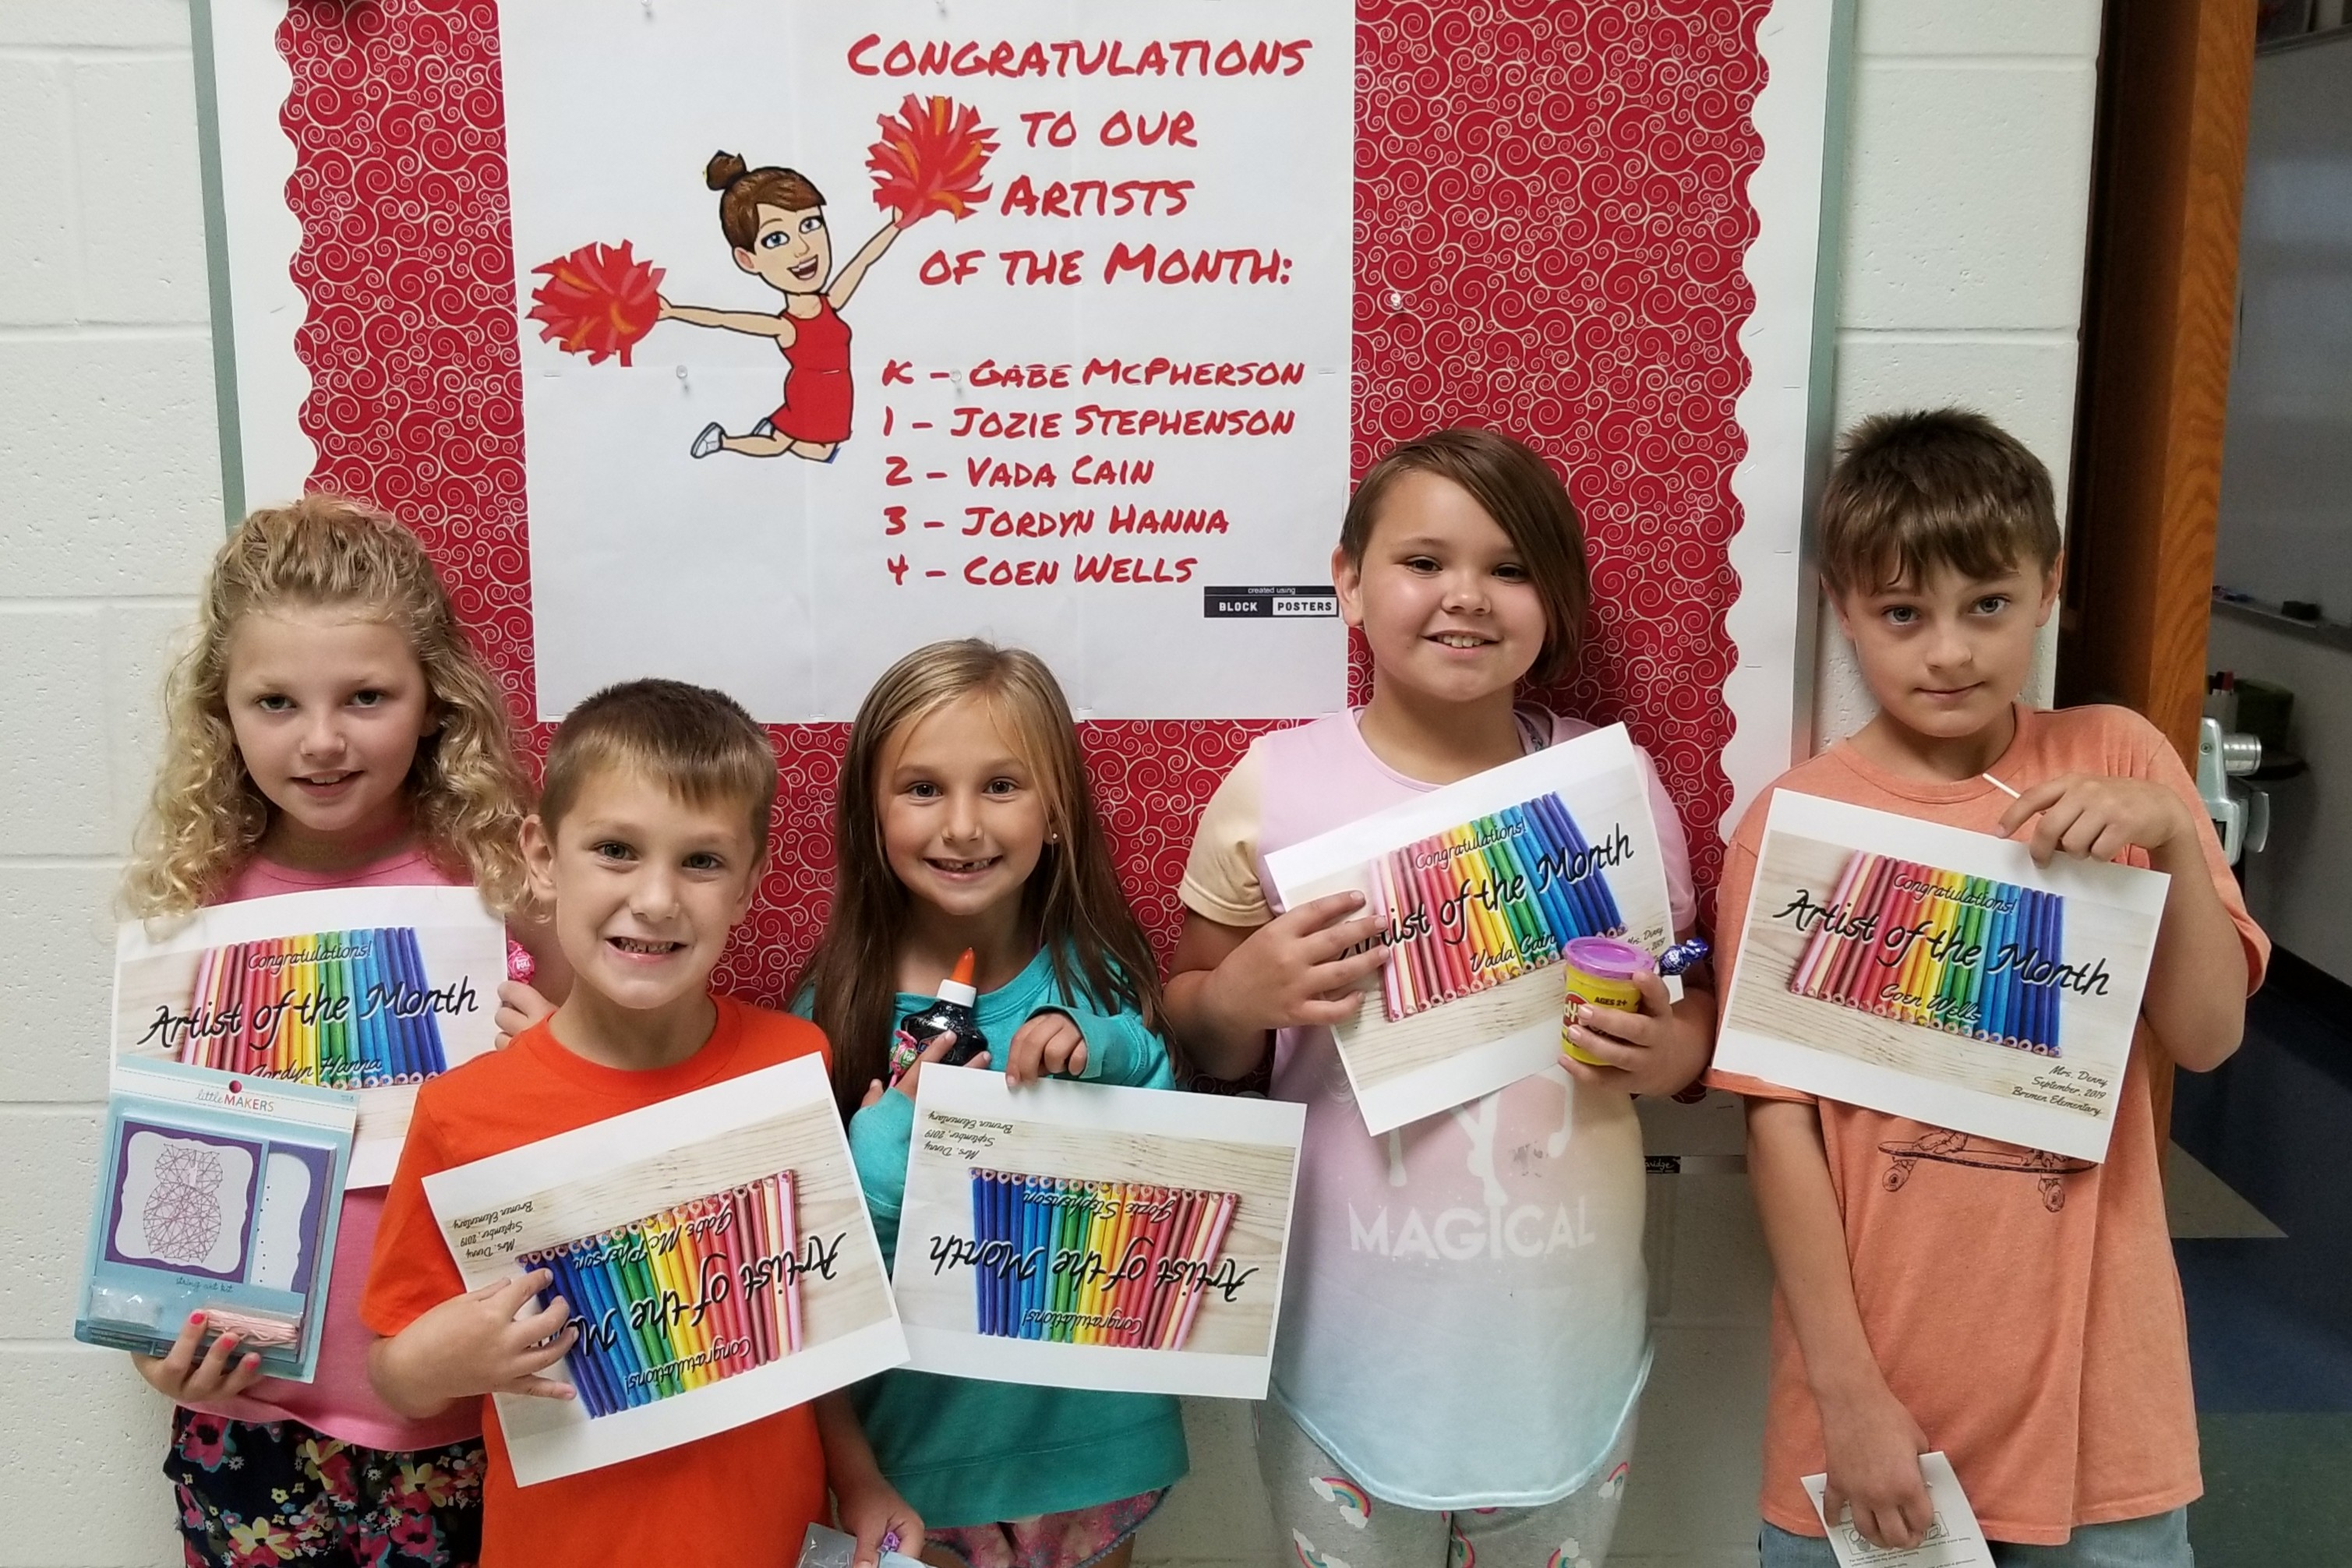 picture of artists of the month for September